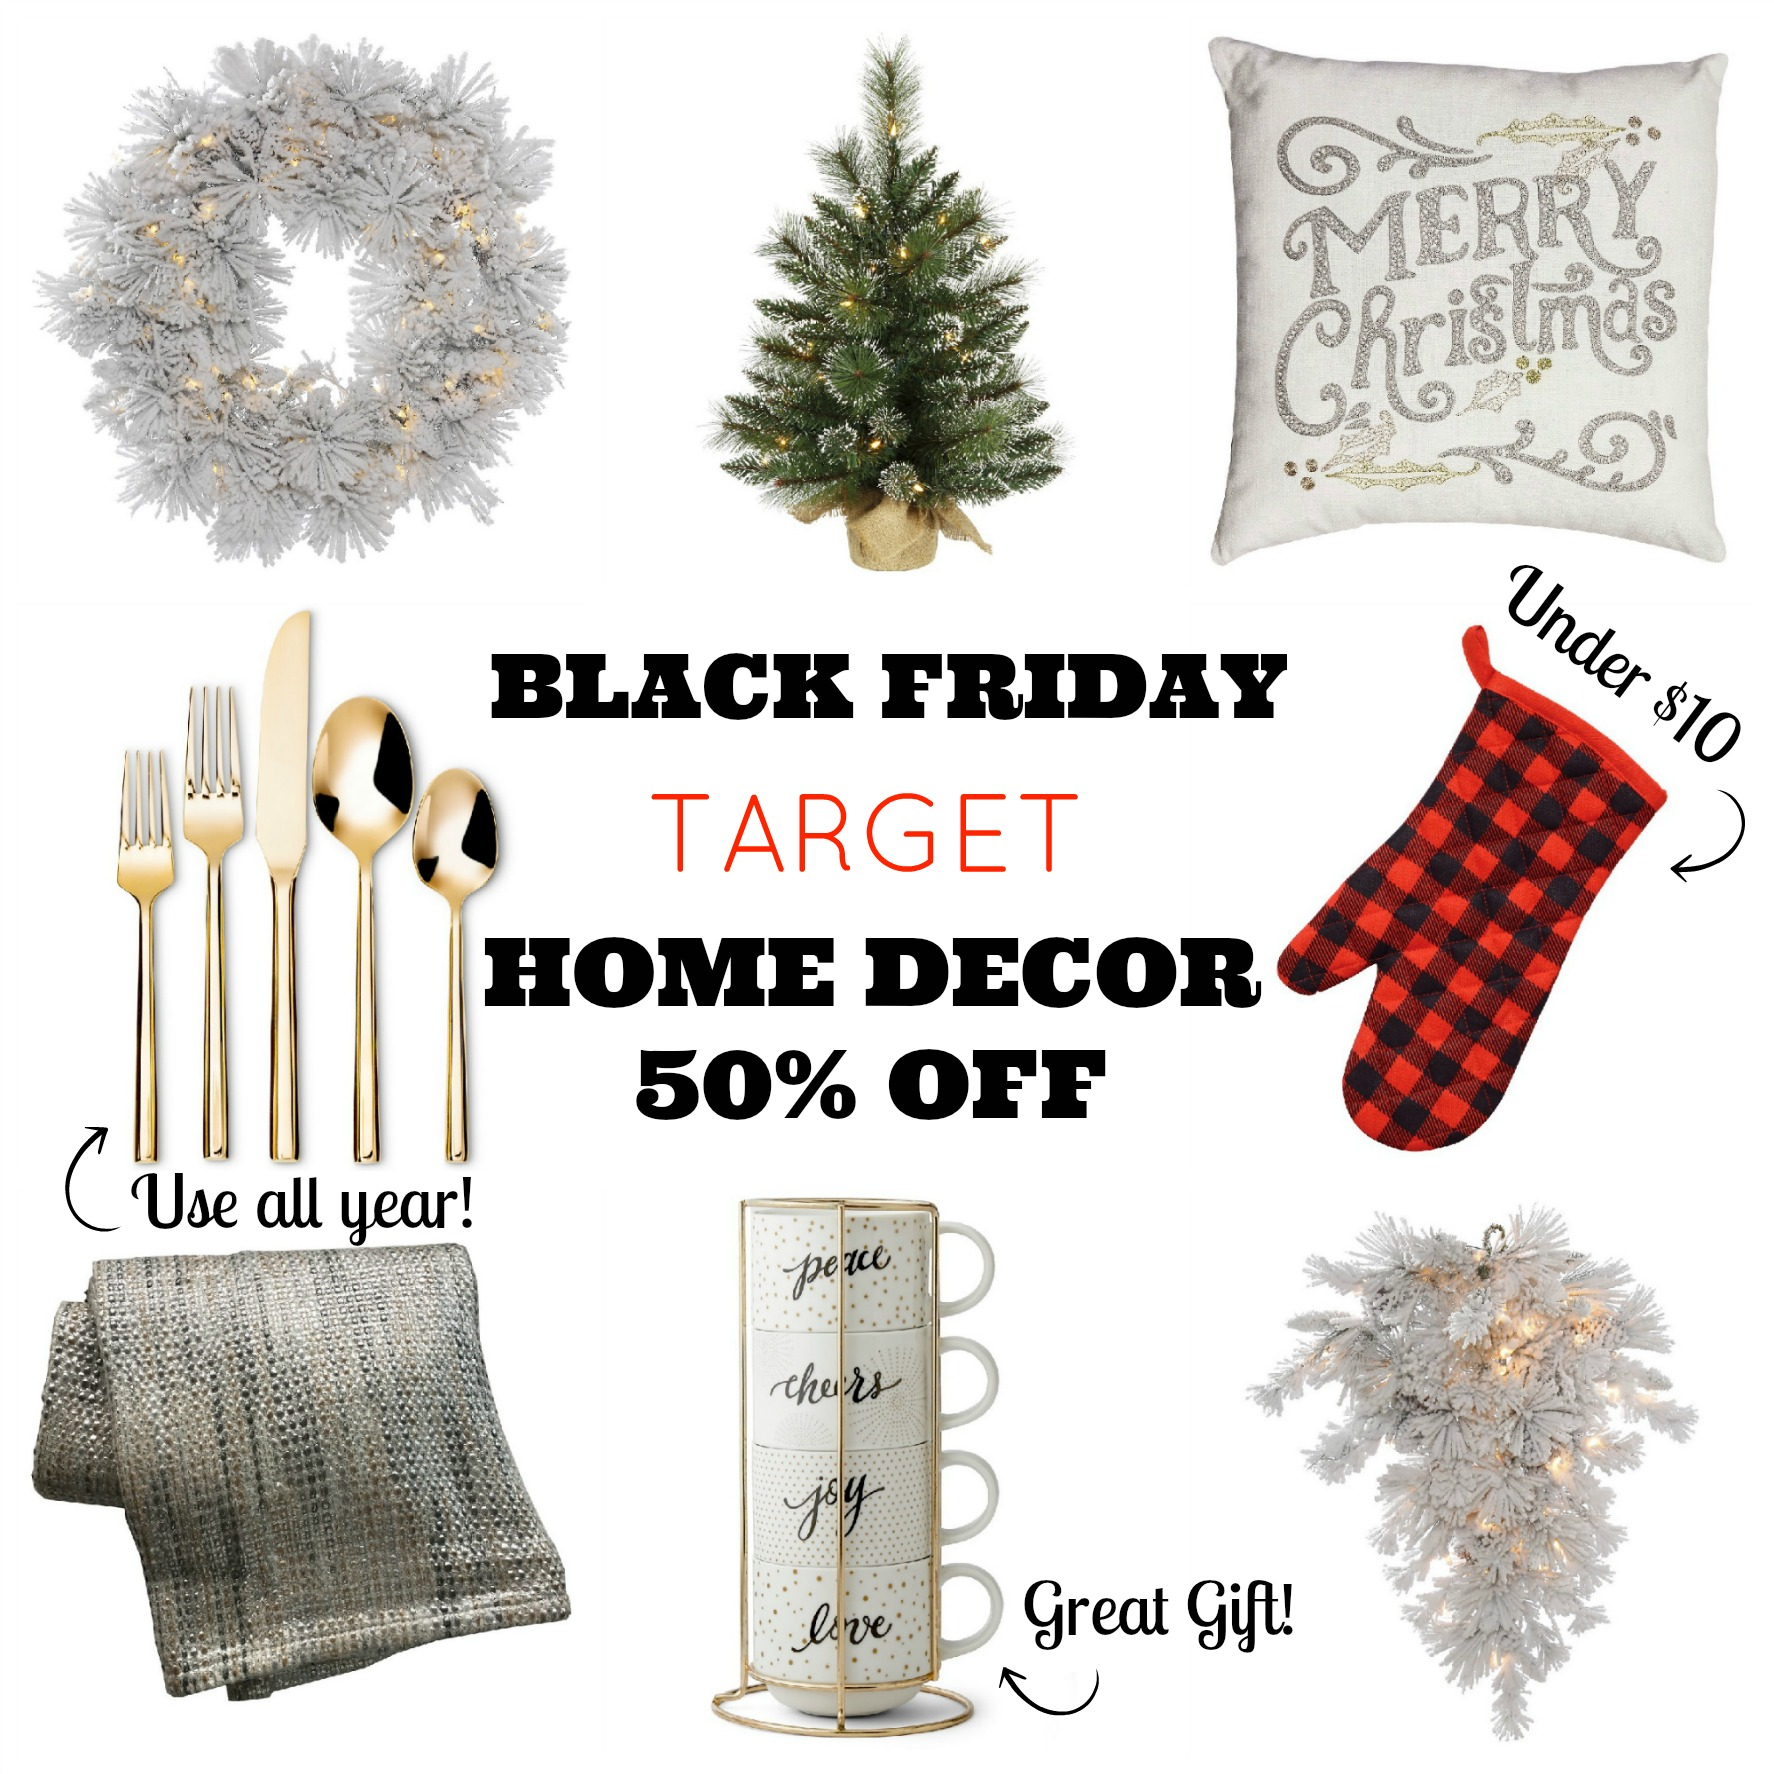 Black Friday Deals Target Home Decor